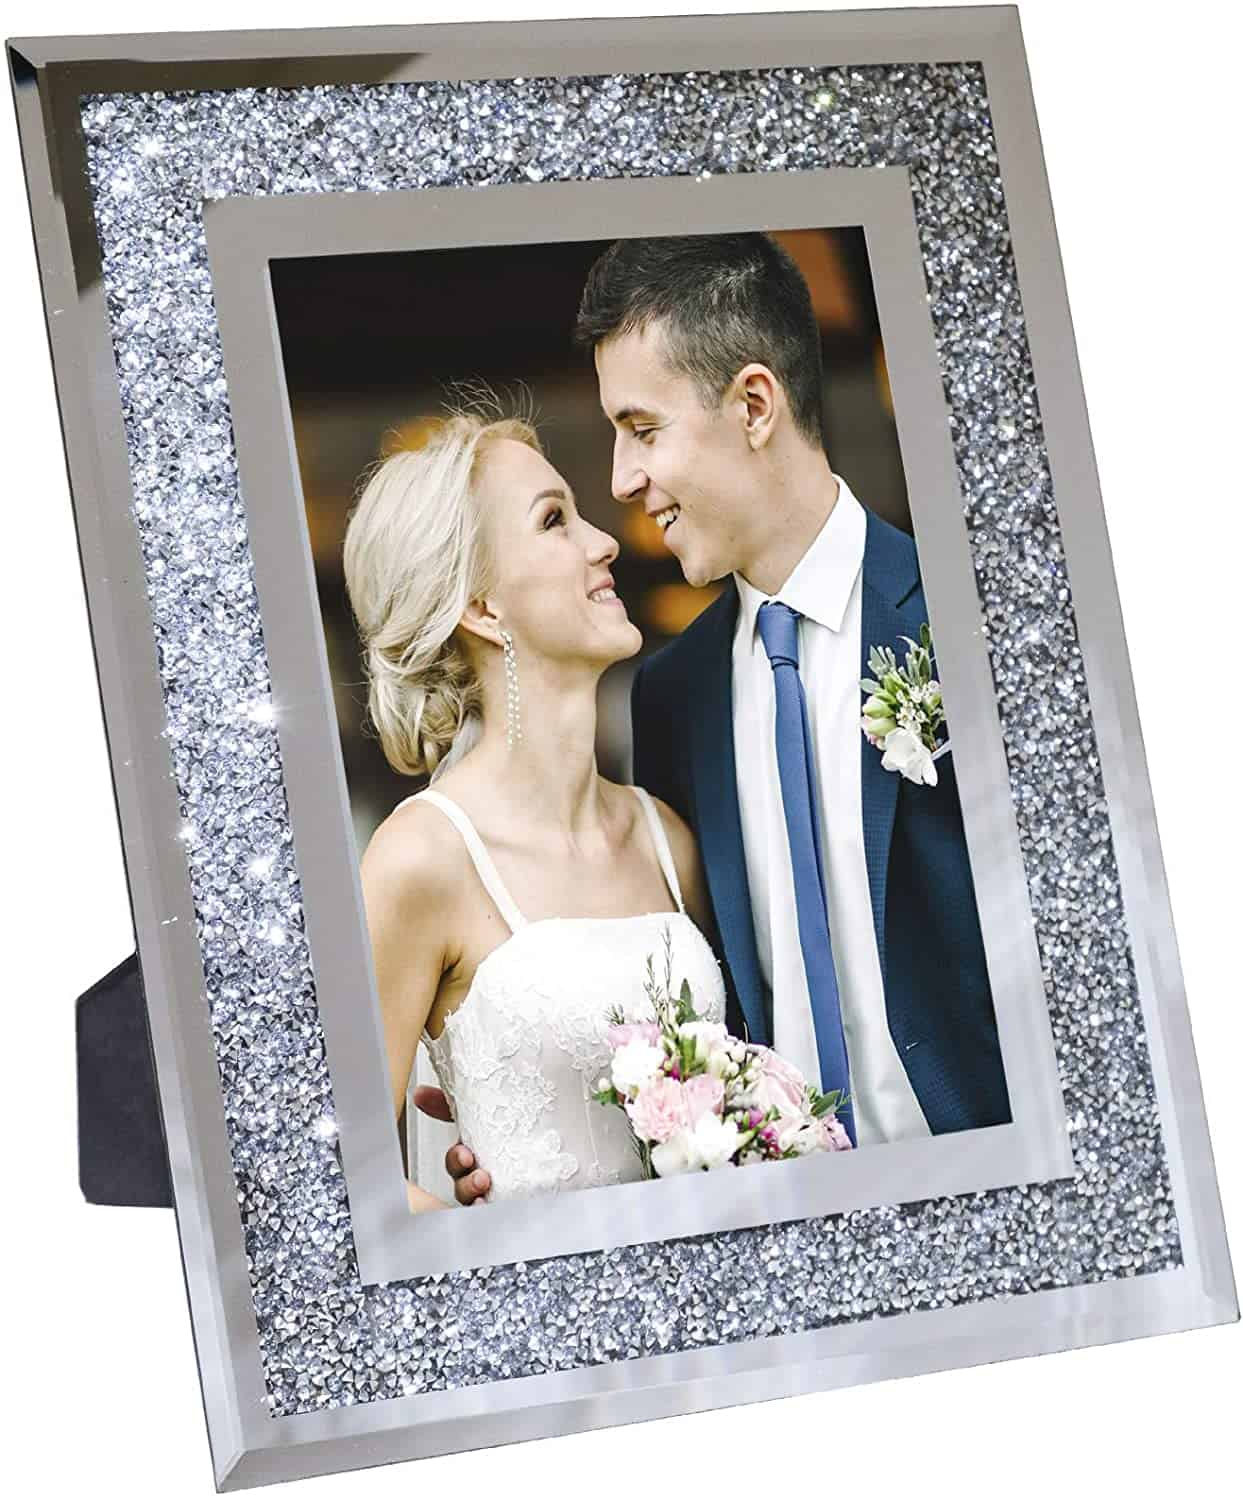 15 year anniversary gift for him:Photo Holder Glass Mirror with Sparkling Crystal Boarder